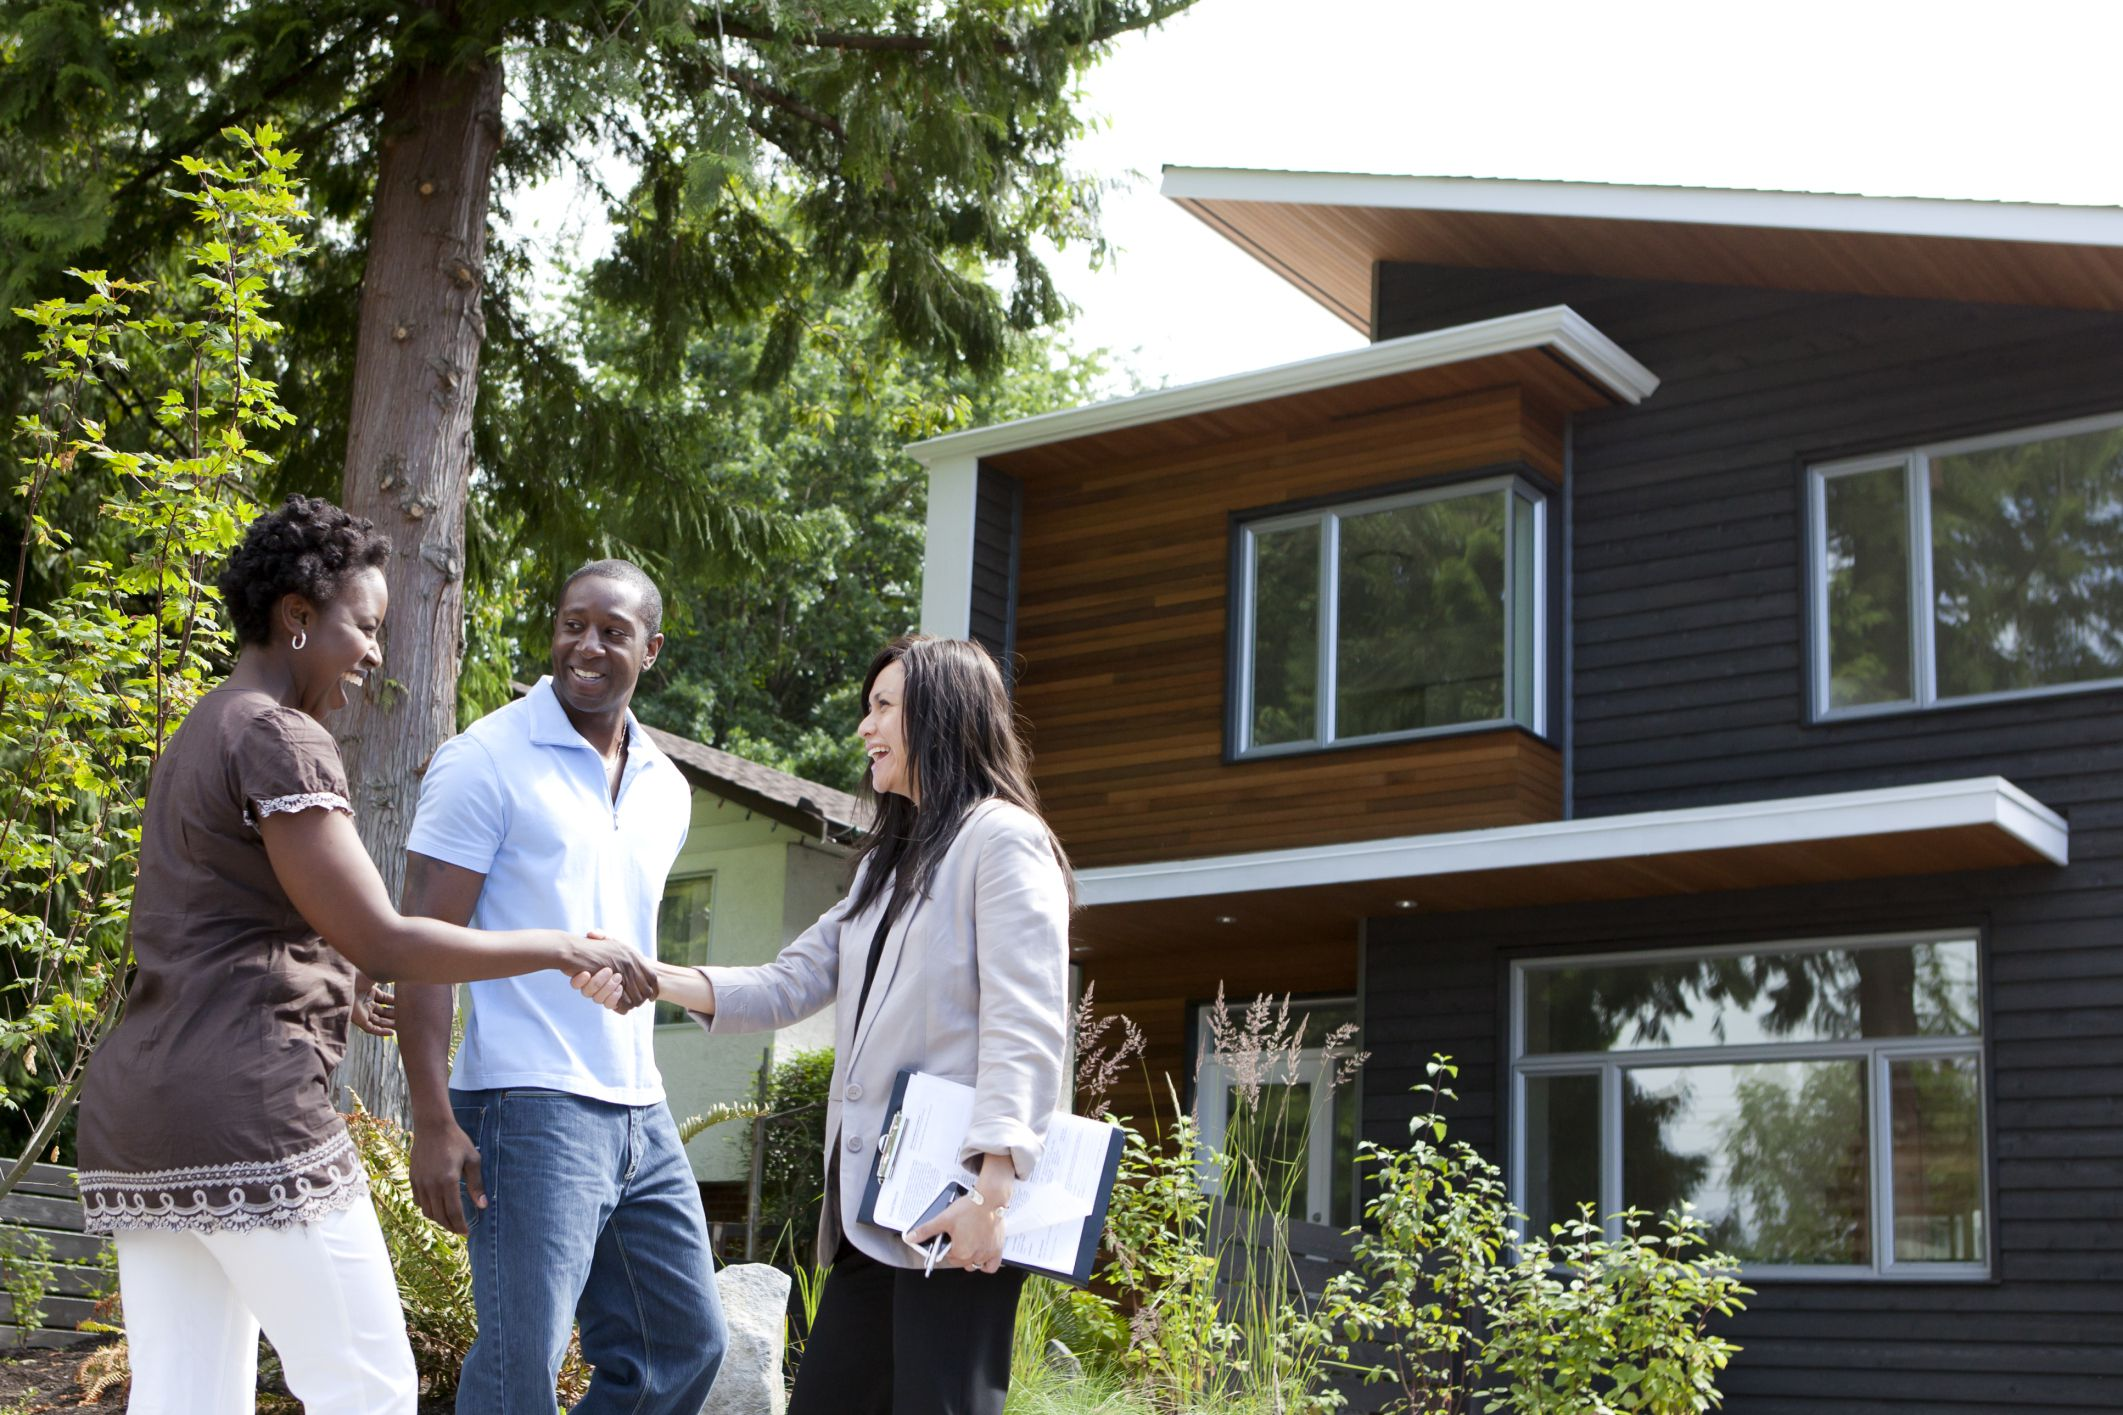 What Clients Value in a Real Estate Agent